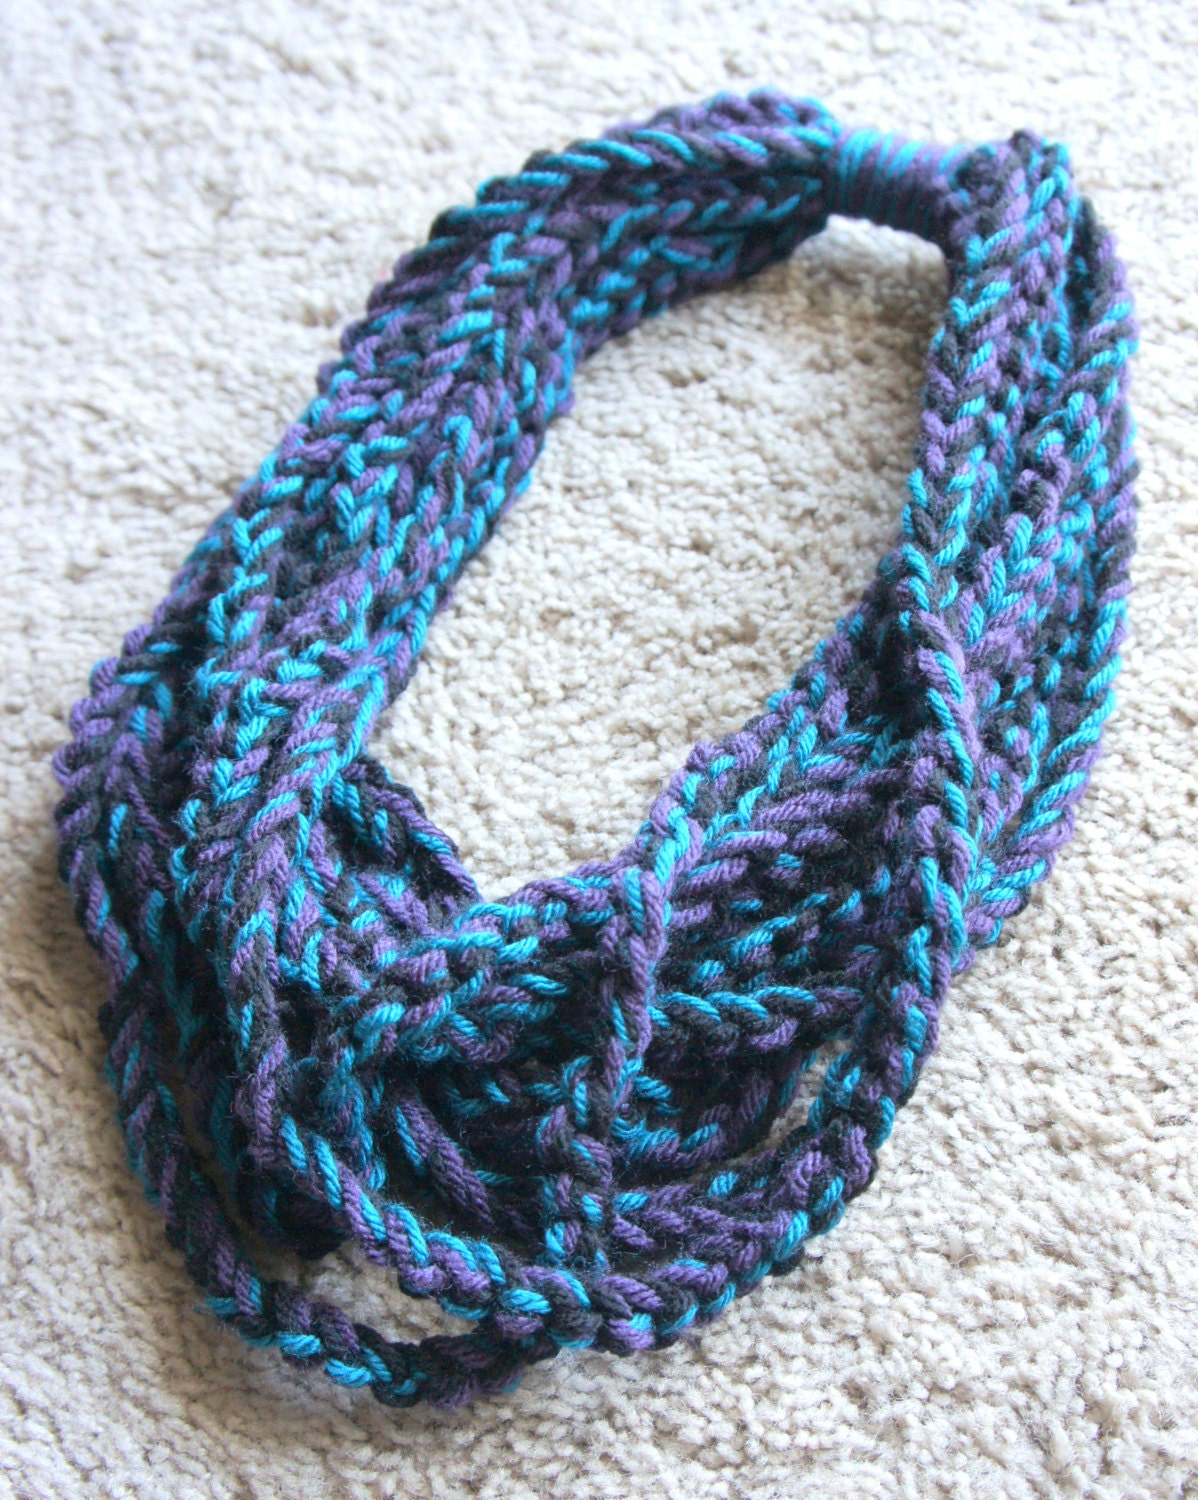 Crochet Cowl Neck Scarf Aqua Purple and Black by shiara on Etsy Cowl Neck Scarves Crochet